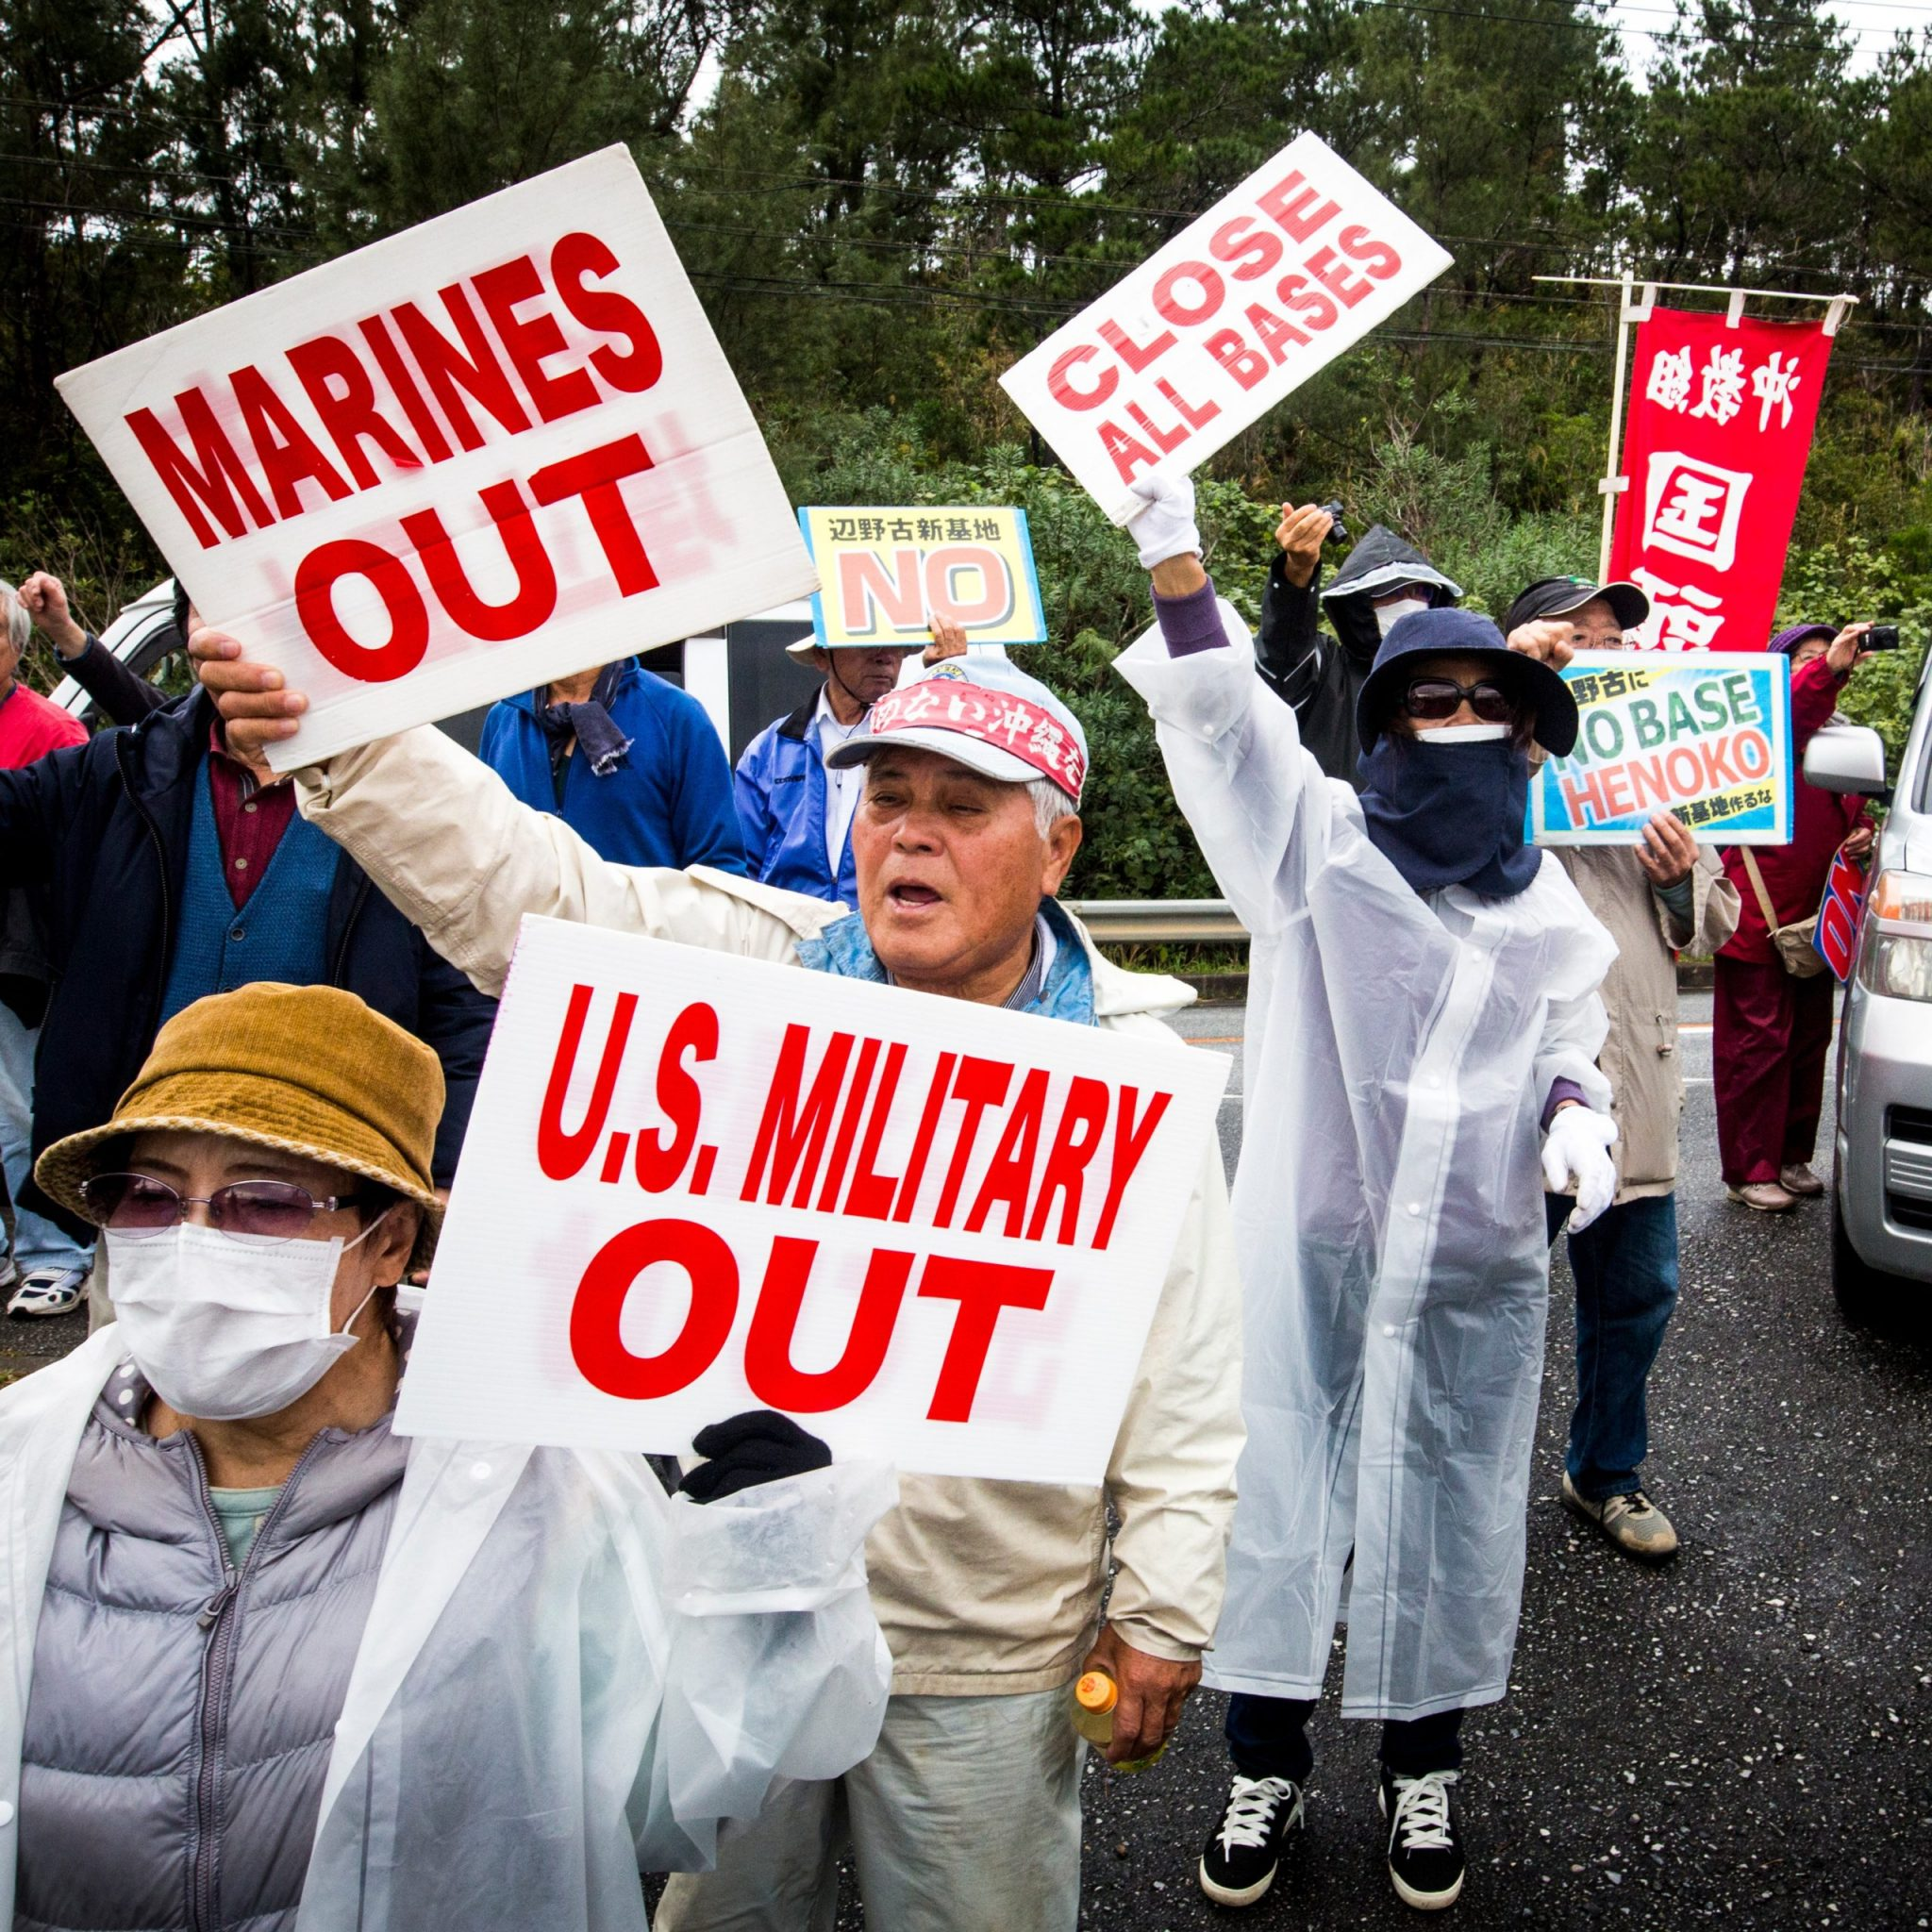 The photo shows protesters in Okinawa at the site of construction of a new U.S. military base